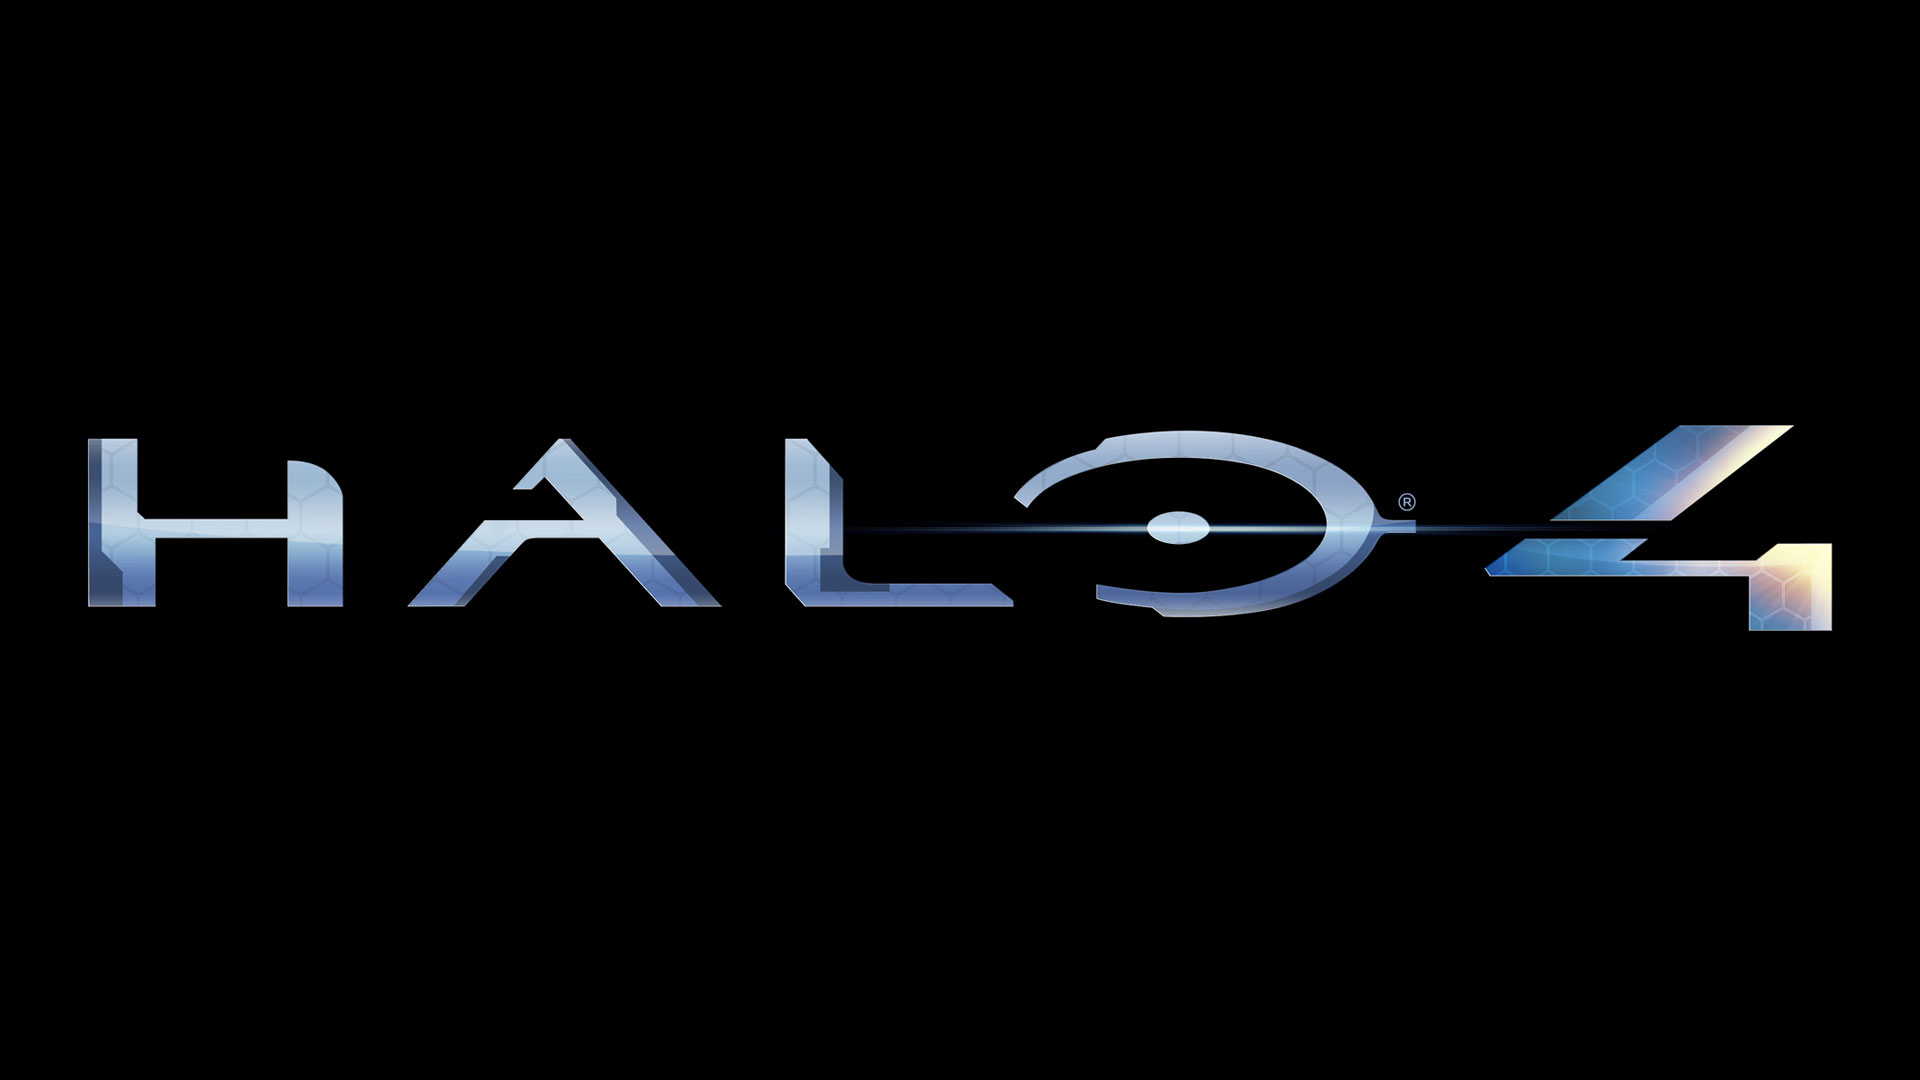 Halo 4 Wallpapers in HD 1920x1080